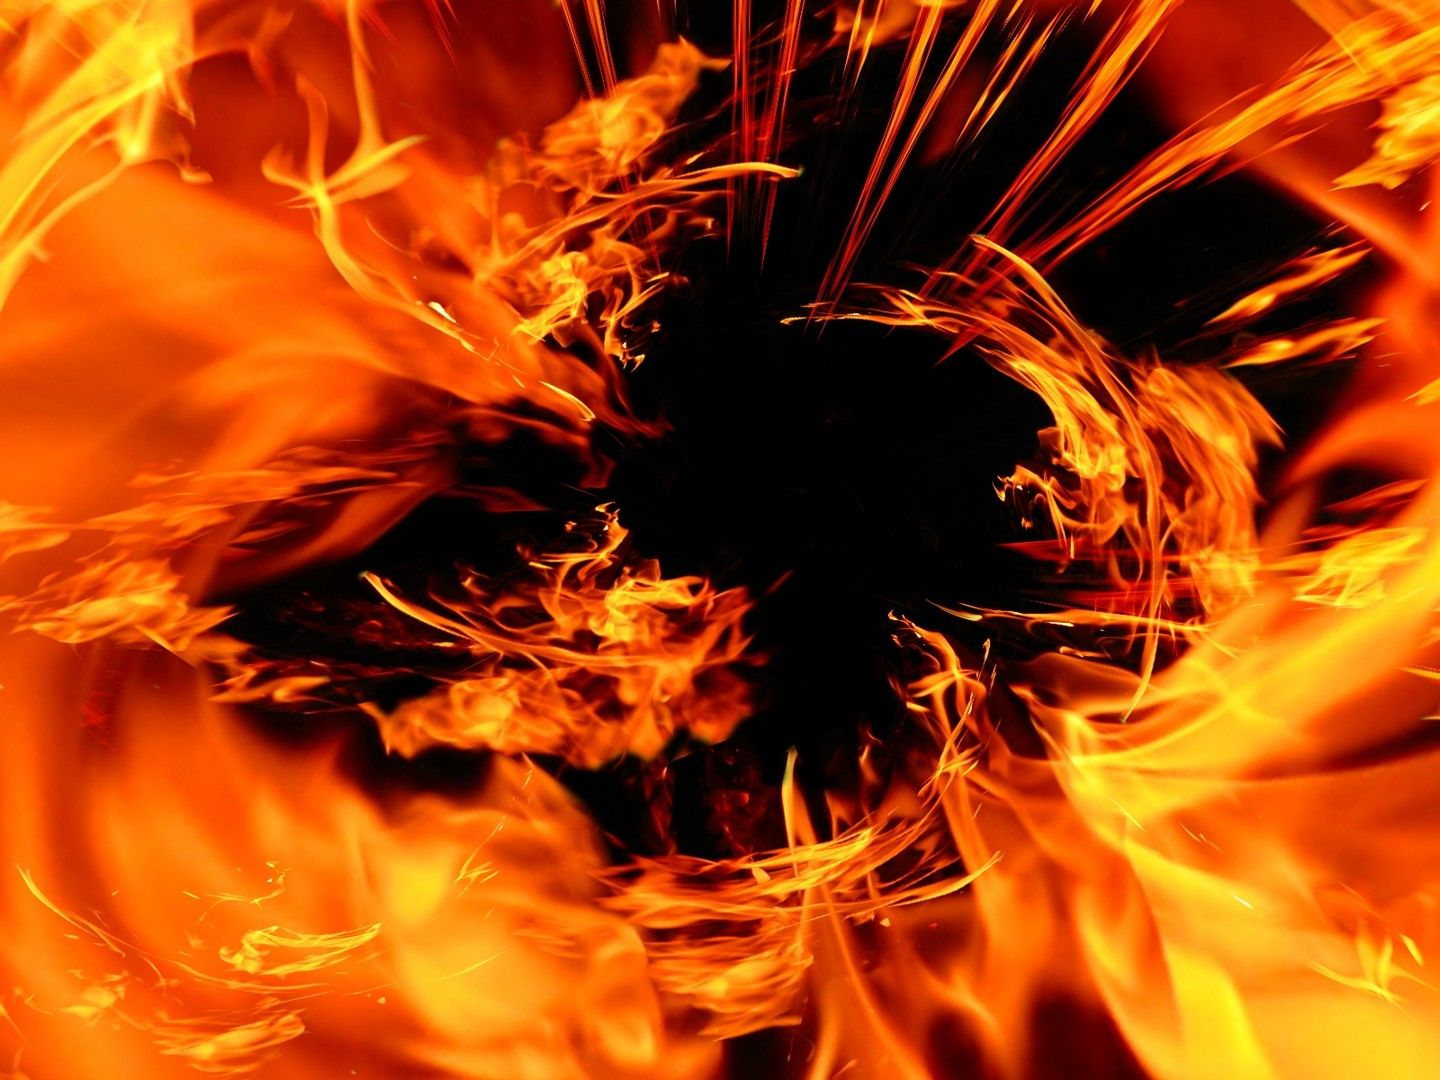 Cool Fire Wallpapers Hd Wallpapers Pics Abstract Wallpaper Backgrounds Fire Art Abstract Wallpaper